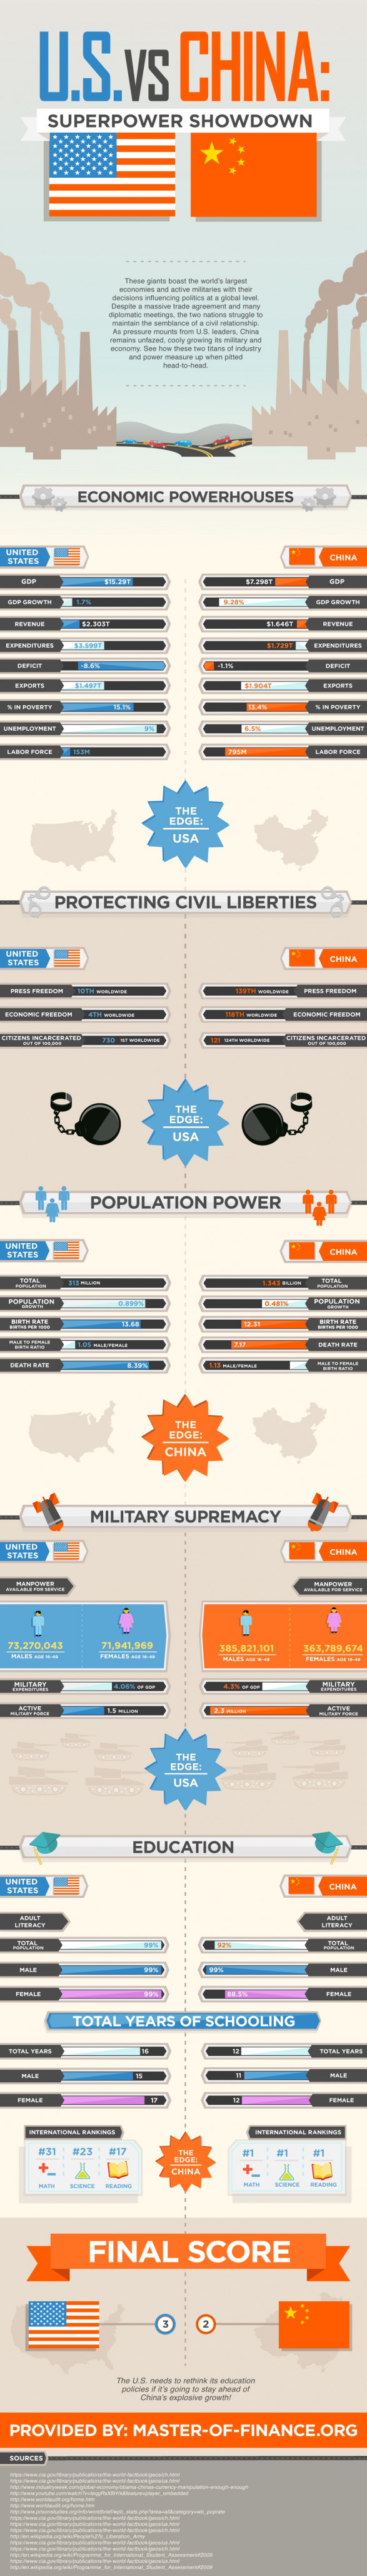 US vs. China - Superpower showdown